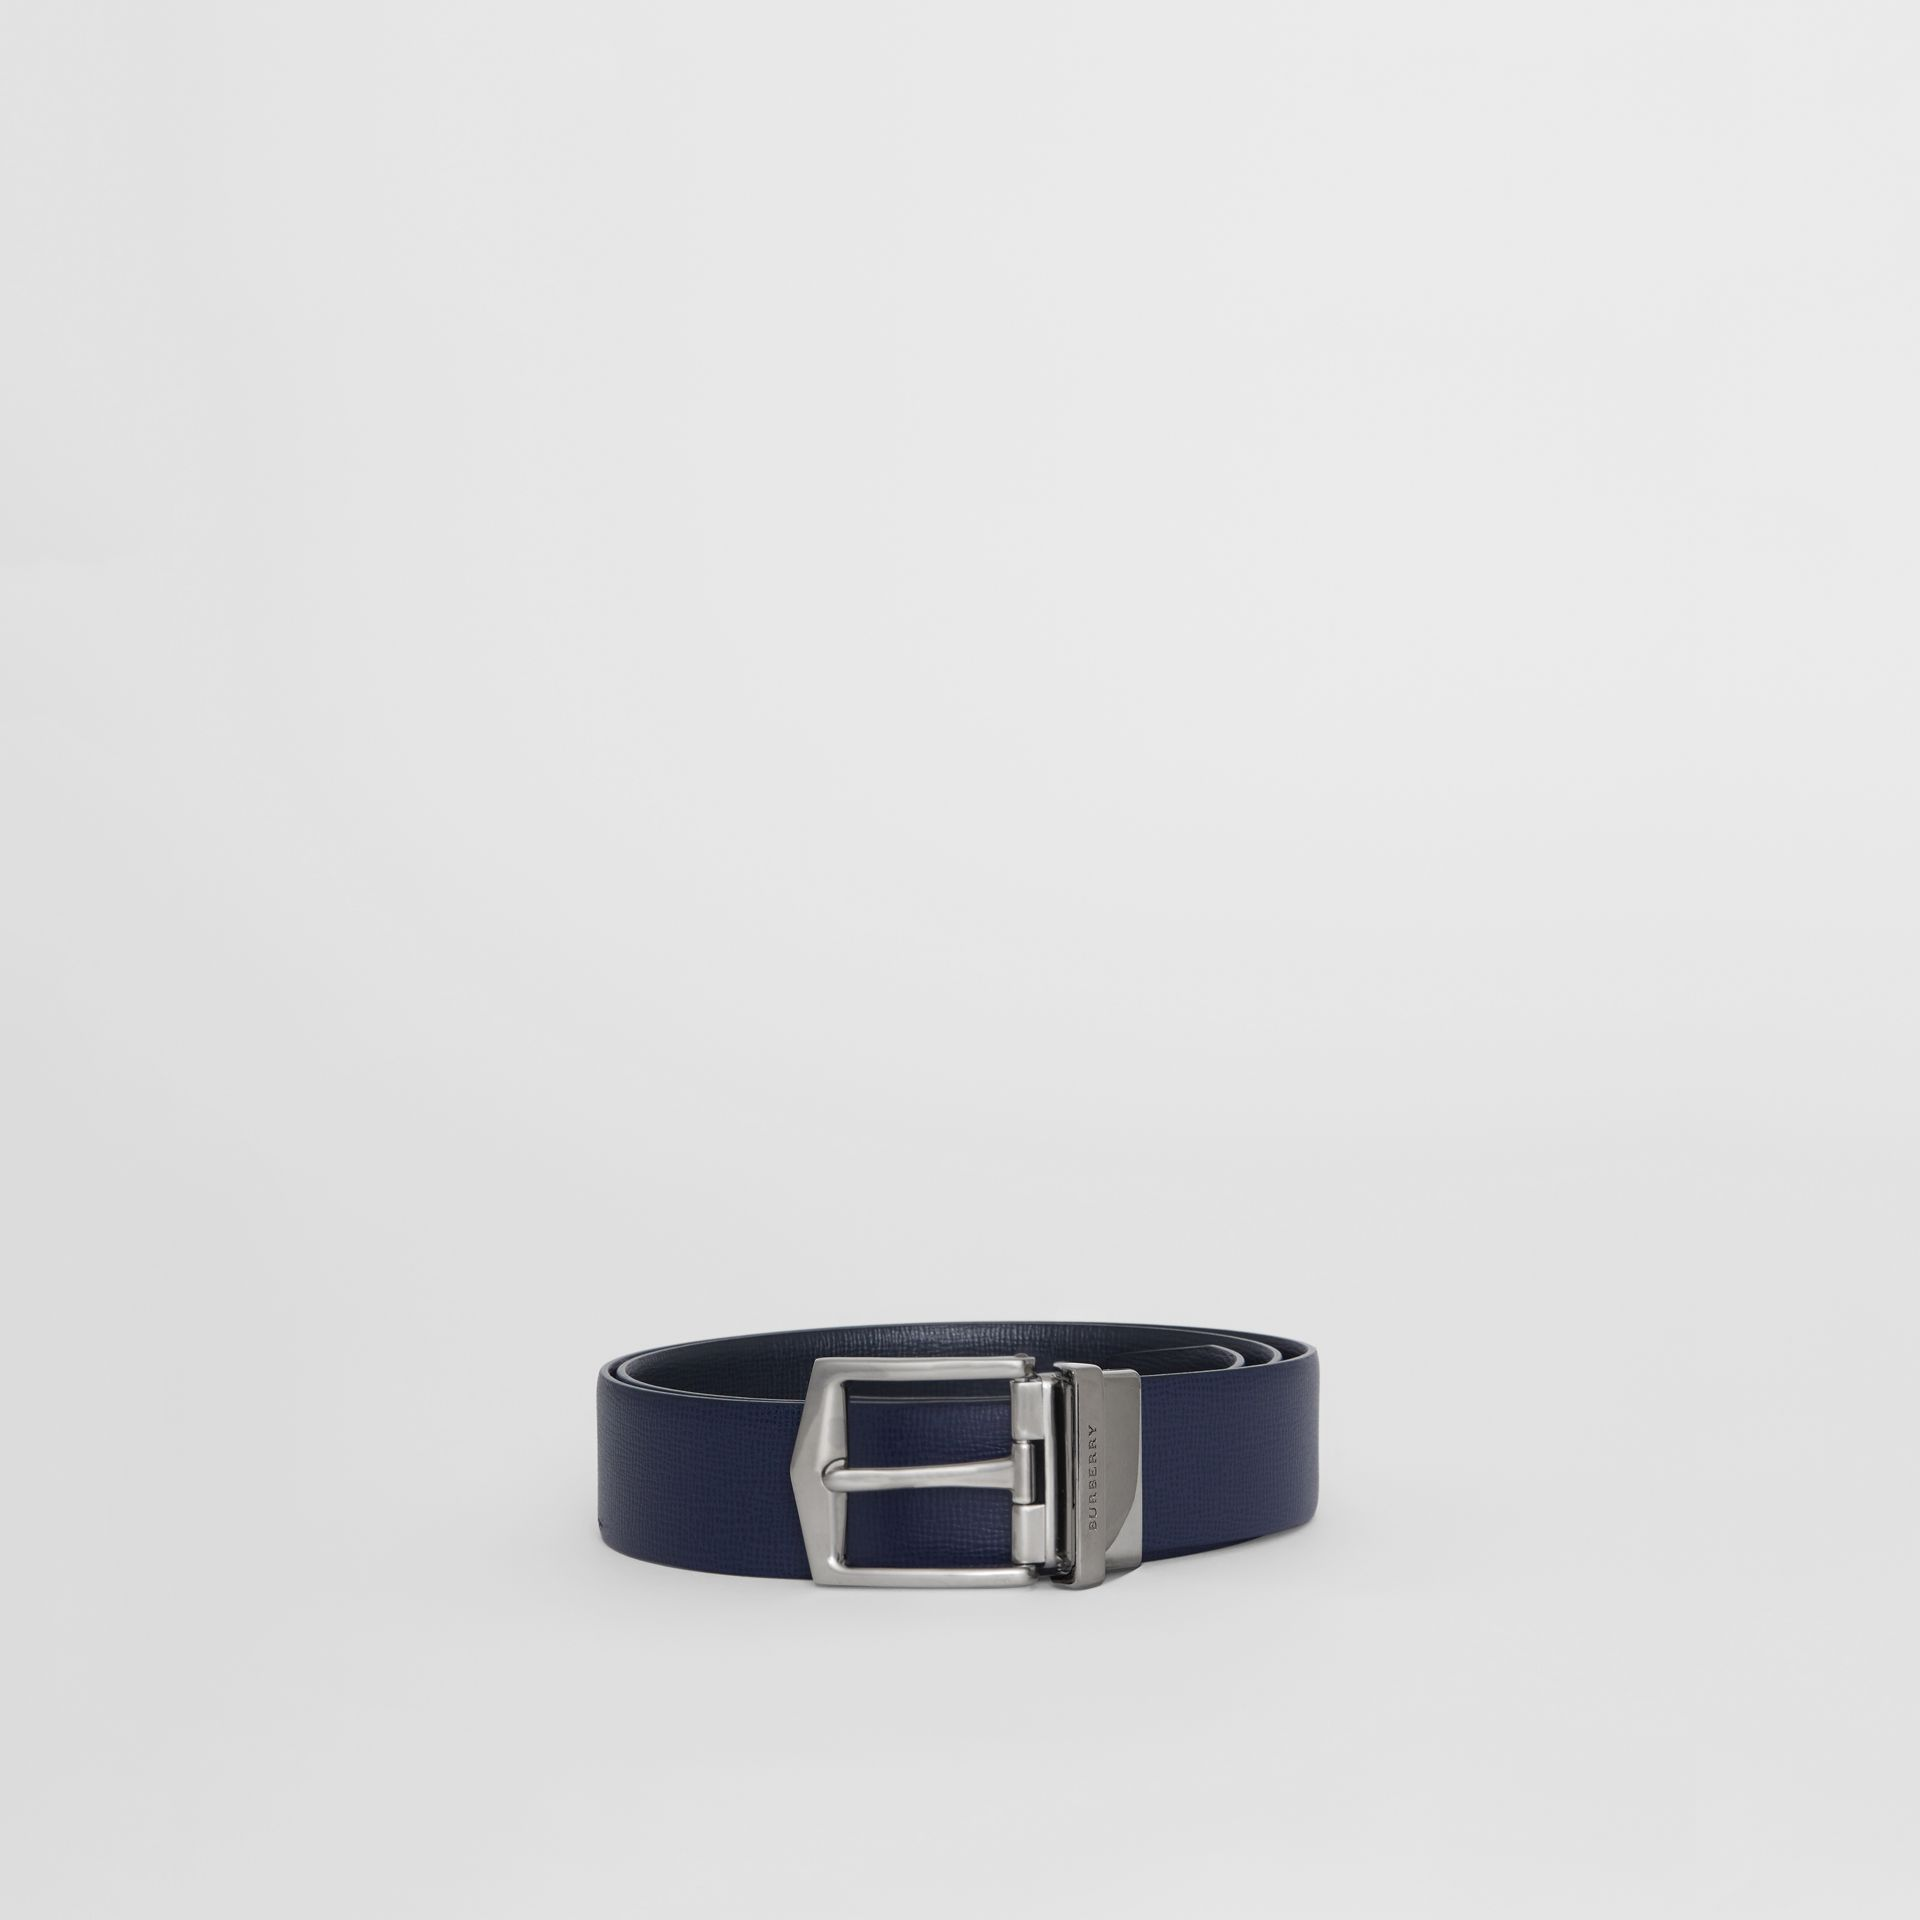 Cintura double face in pelle London (Navy Scuro/nero) - Uomo | Burberry - immagine della galleria 3